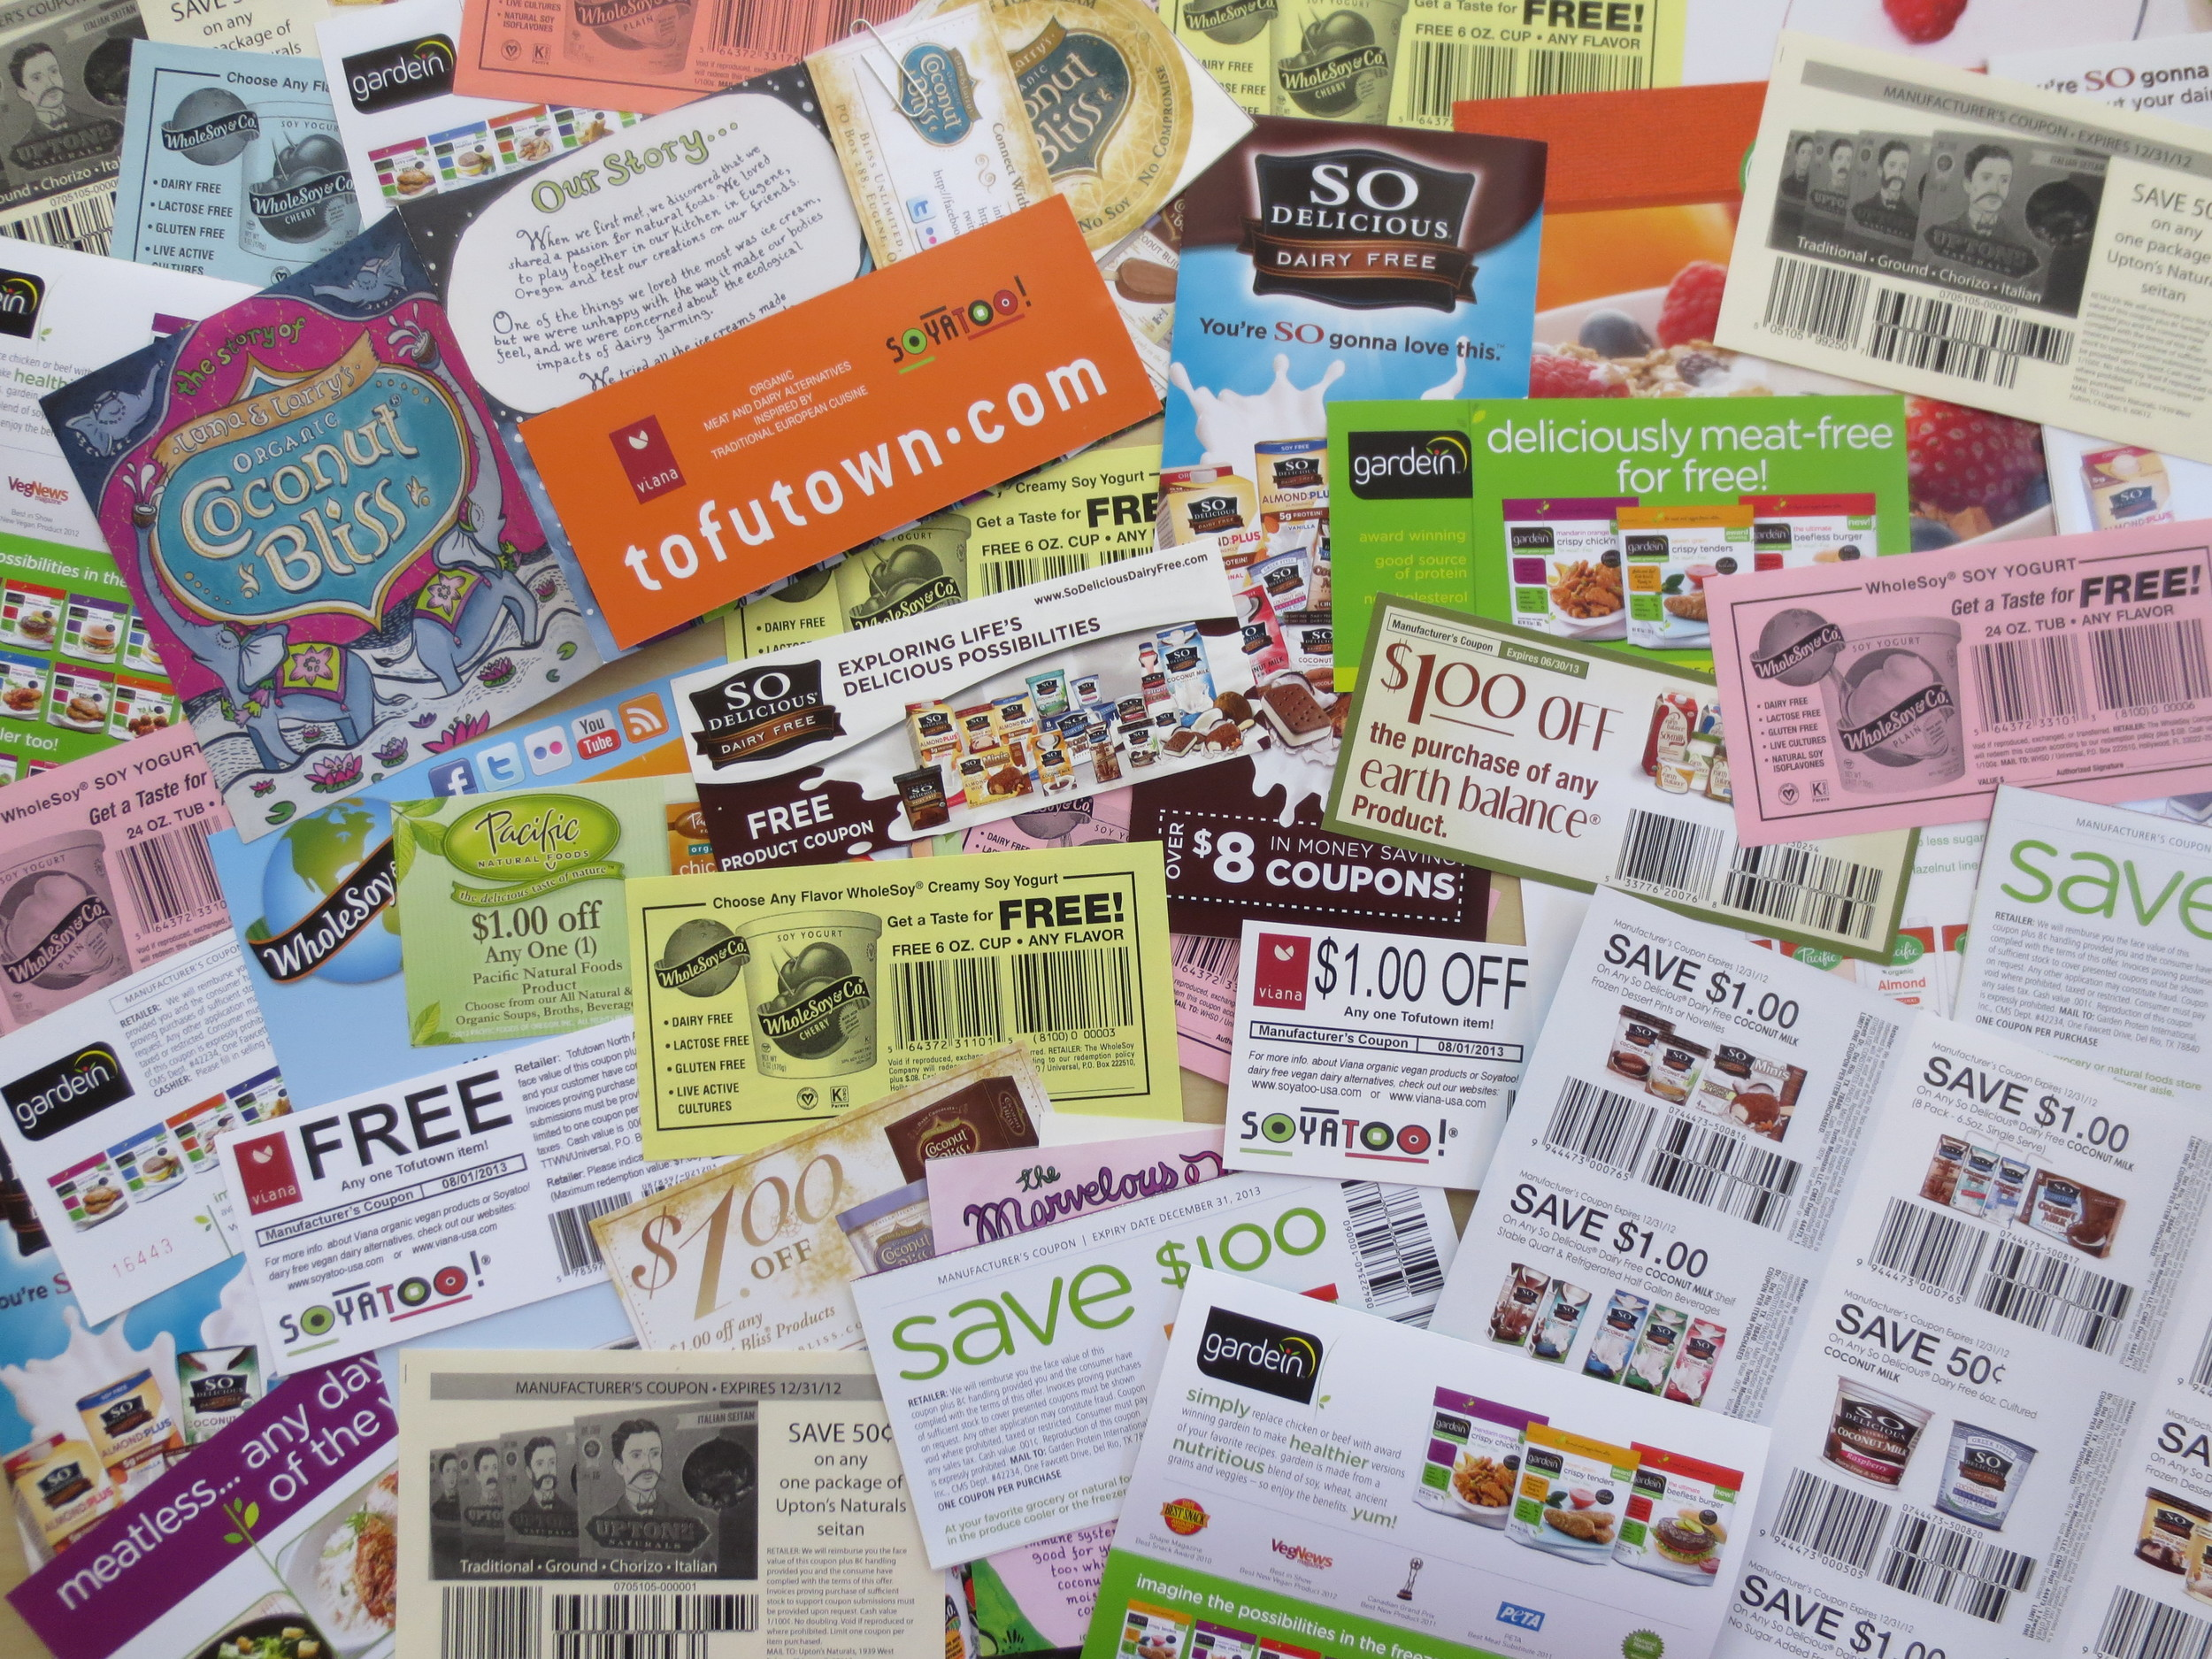 Some of the coupons graciously sent to us by some awesome vegan and vegan-friendly companies to share with challenge takers.